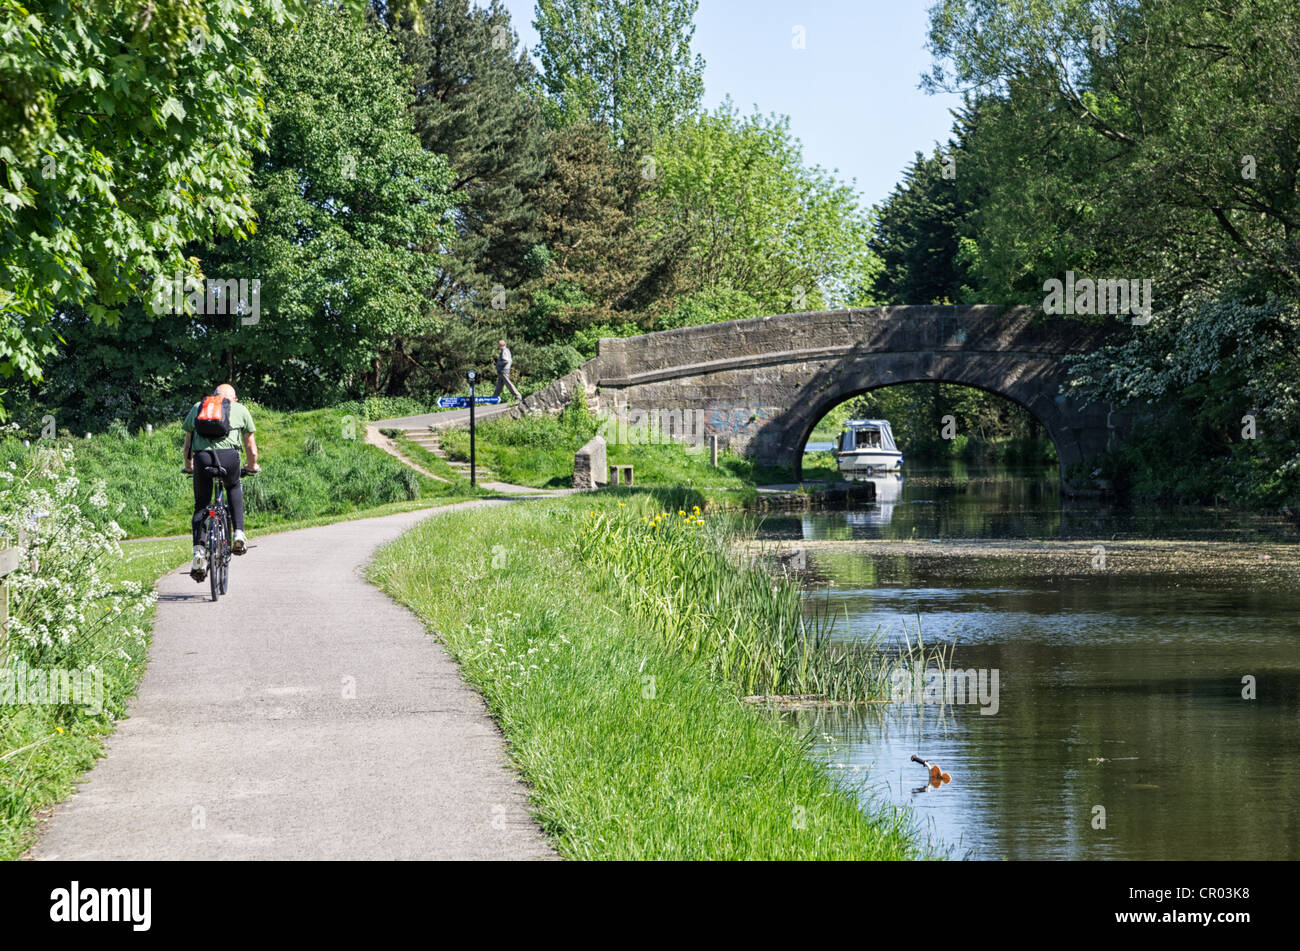 A view looking north along the towpath of the Lancaster Canal with stone bridge and cyclist - Stock Image